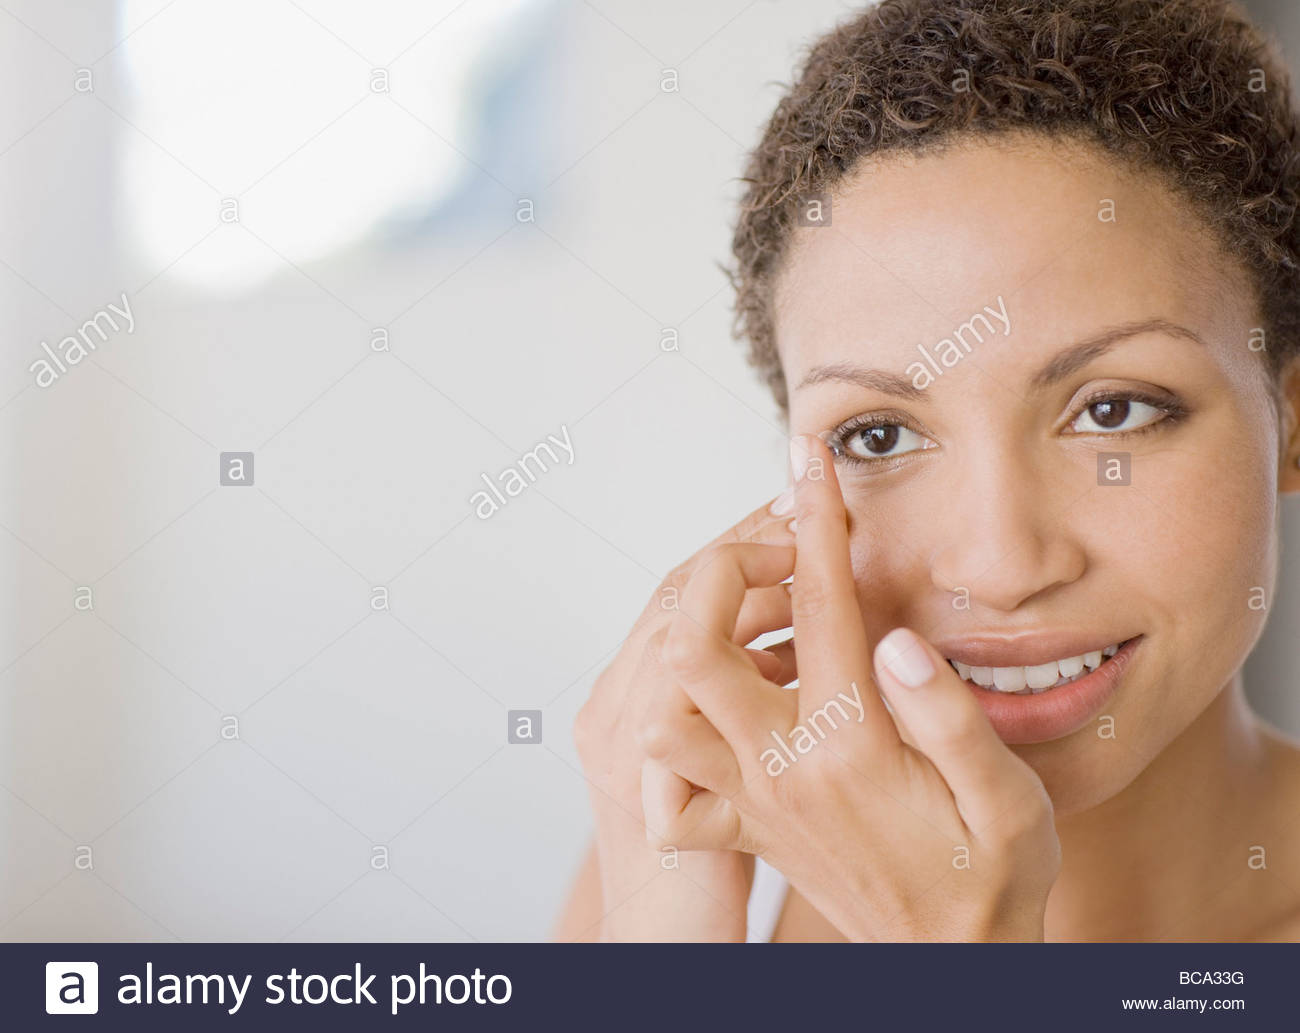 Woman inserting contact lens - Stock Image